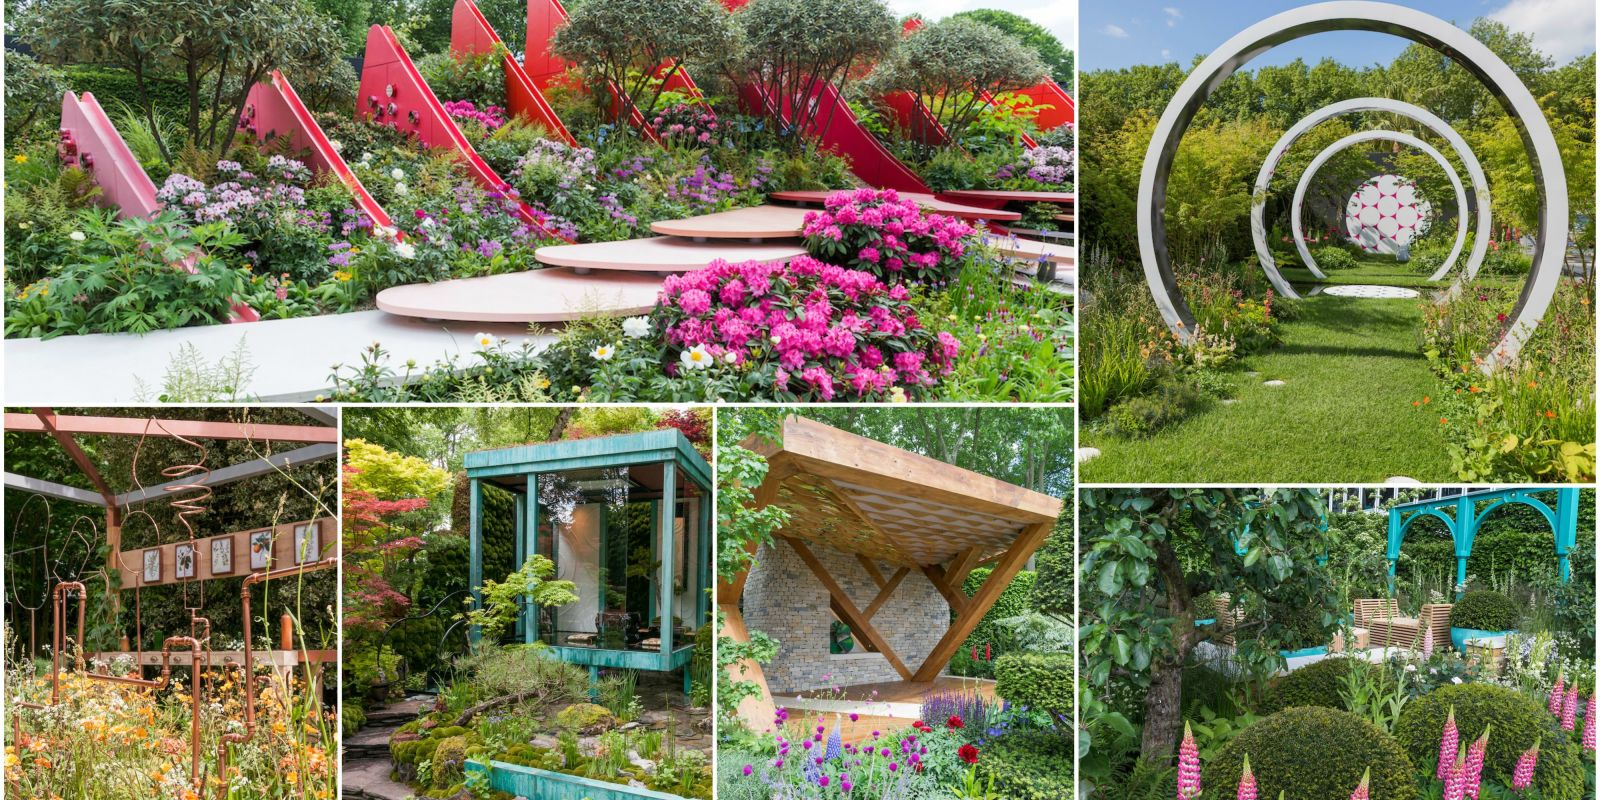 Chelsea flower show 2017 medal winners show garden fresh for Chelsea flower show garden designs